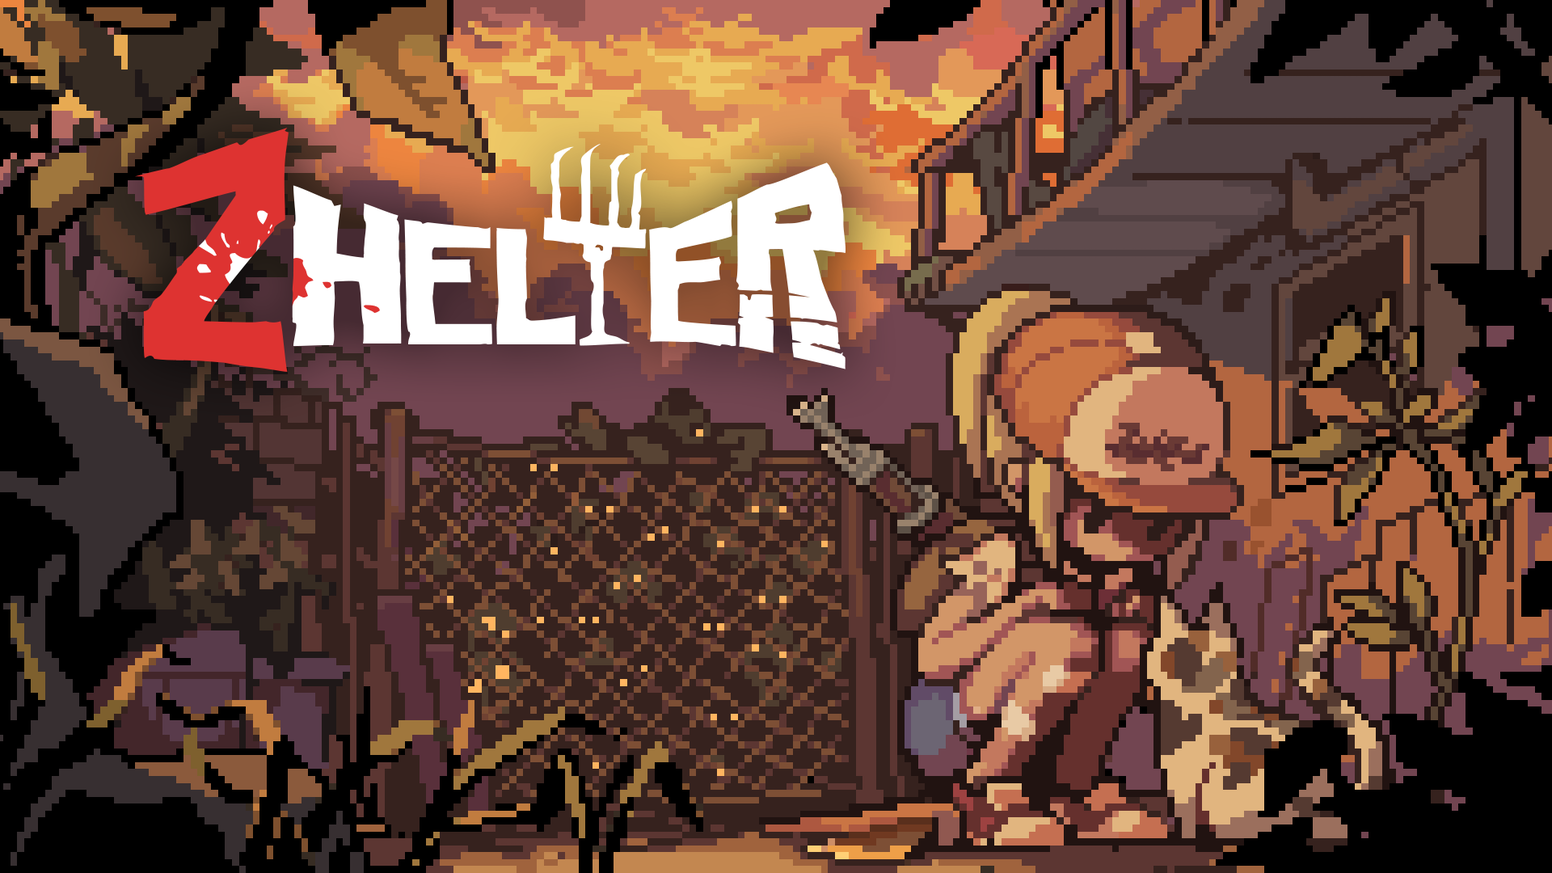 Gather your companions, survive in Zombie apocalypse! Pixel-Art Survival Action Game <Zhelter>